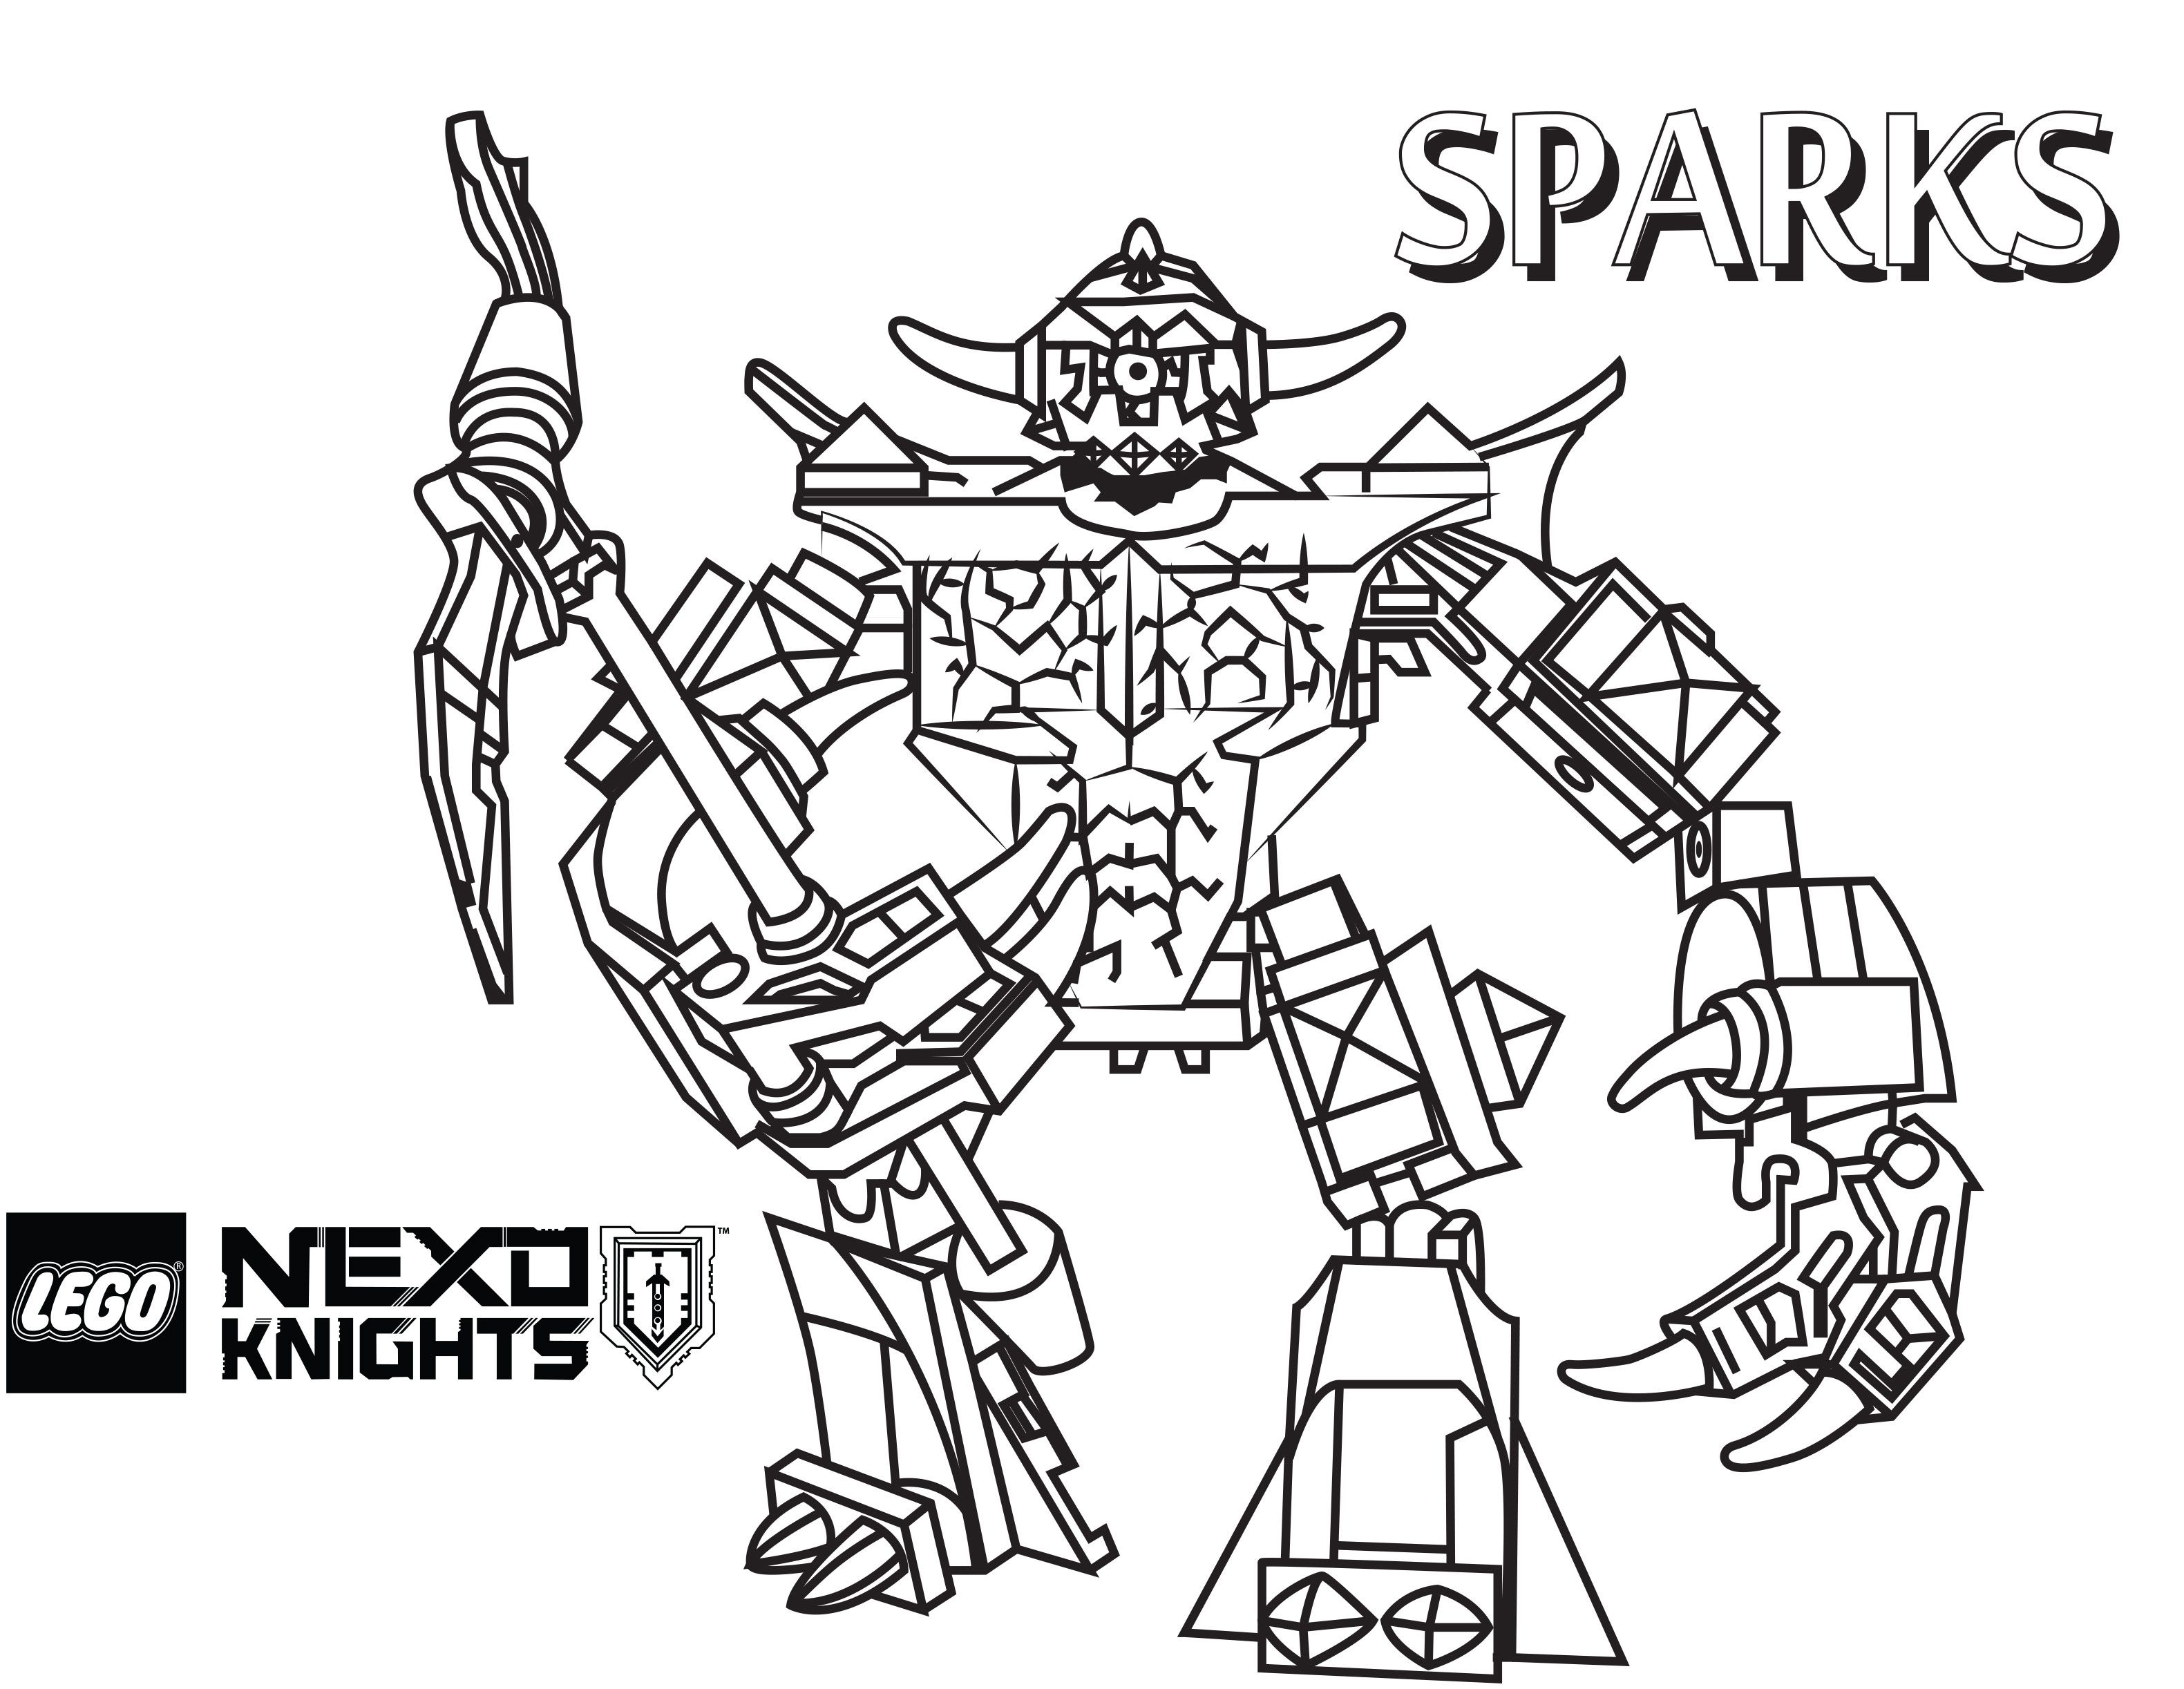 Nexo LEGO Knights Coloring Pages crafts Pinterest